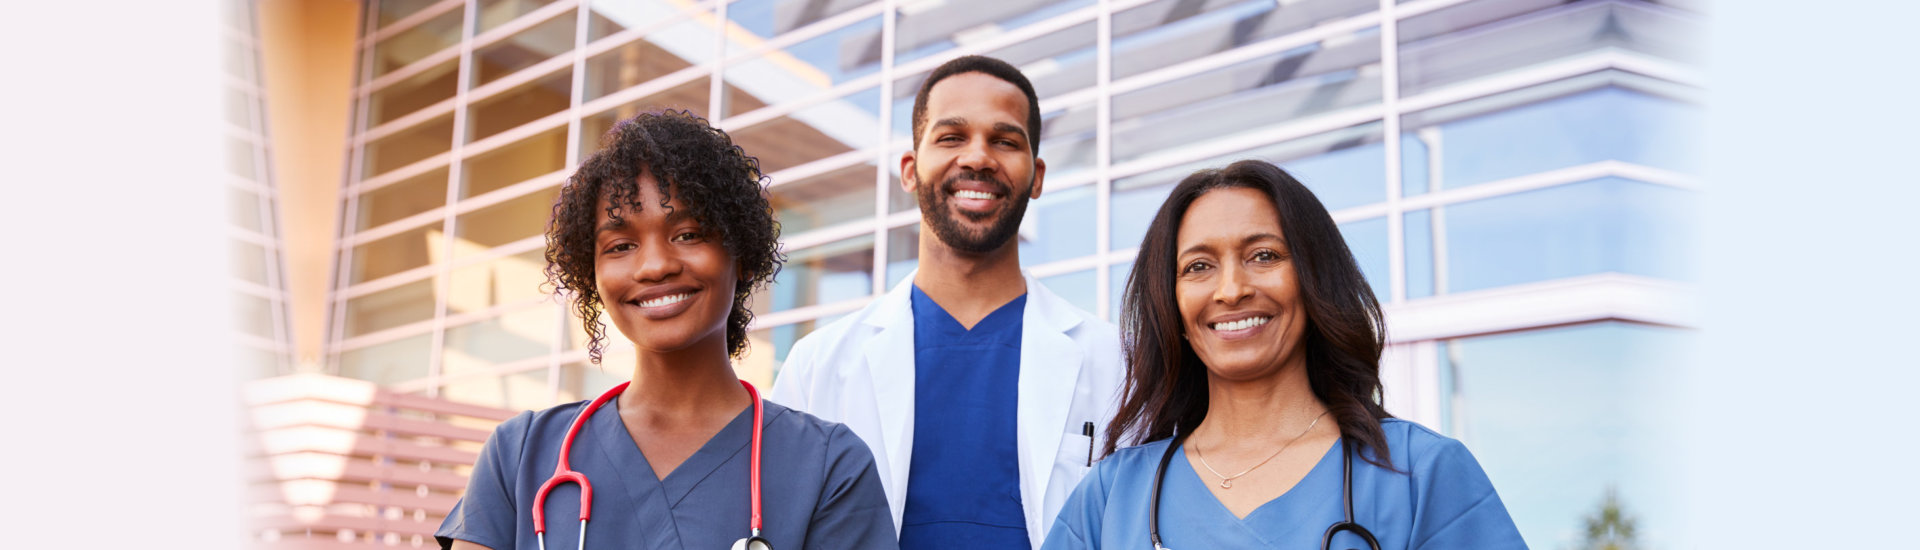 doctor and two nurses smiling